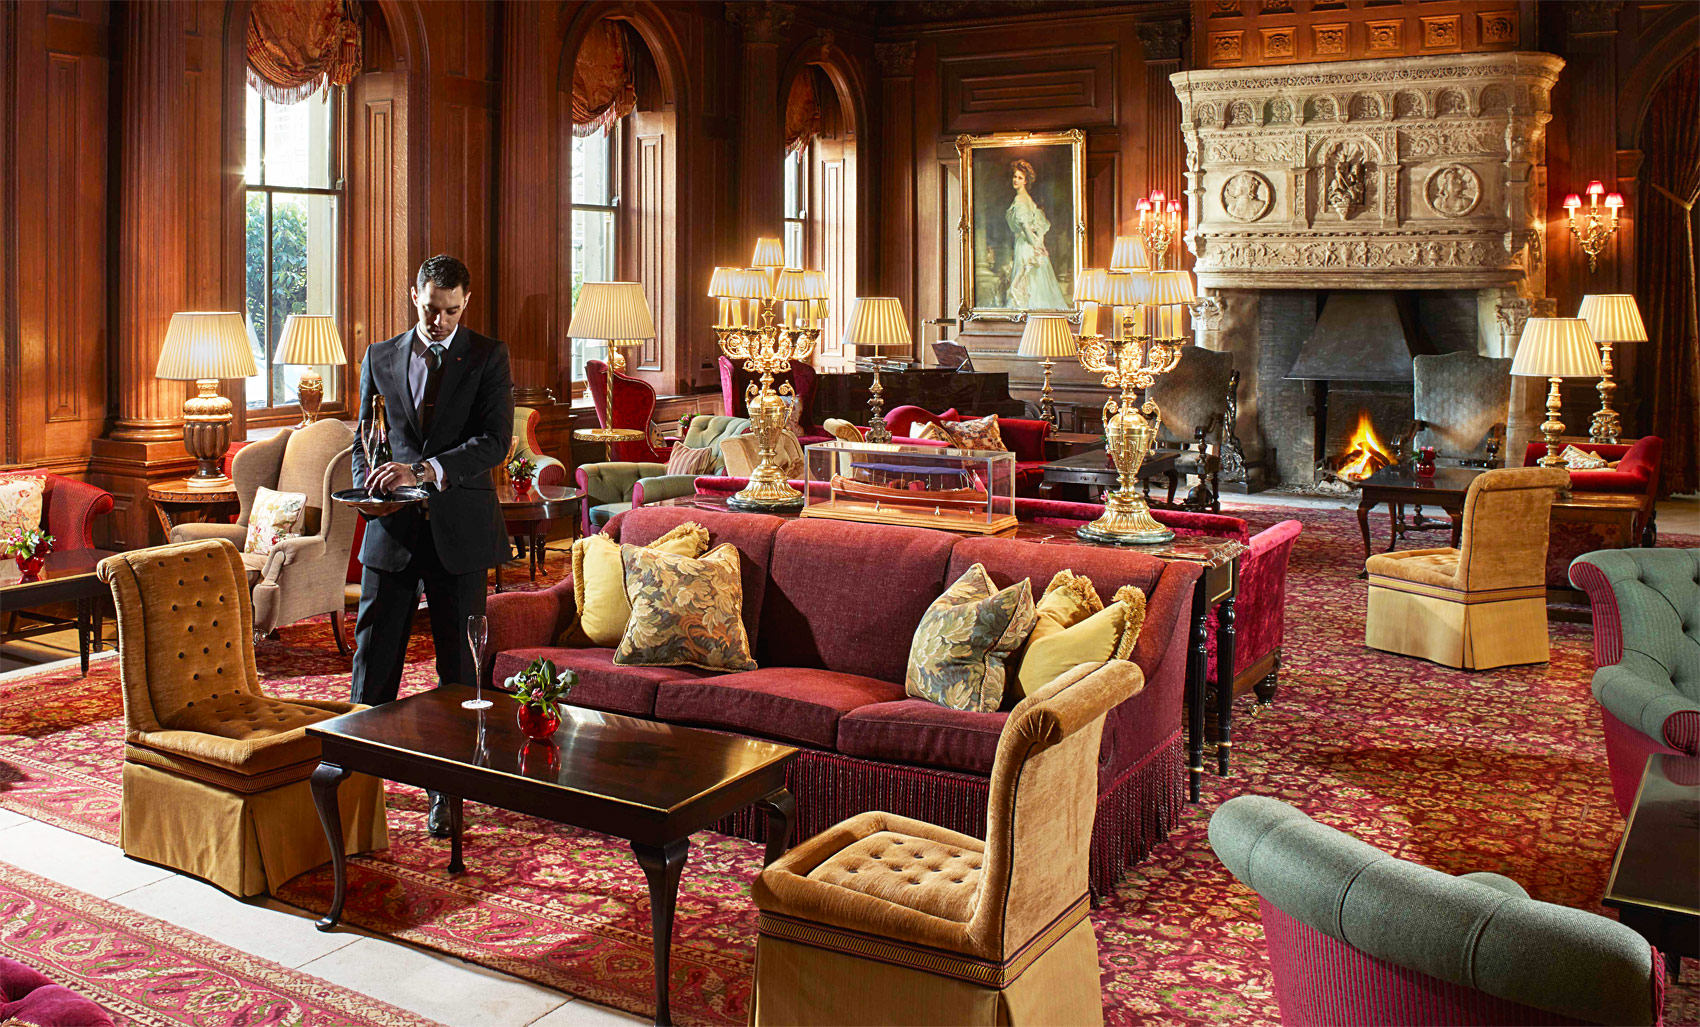 The great hall at Cliveden House Hotel